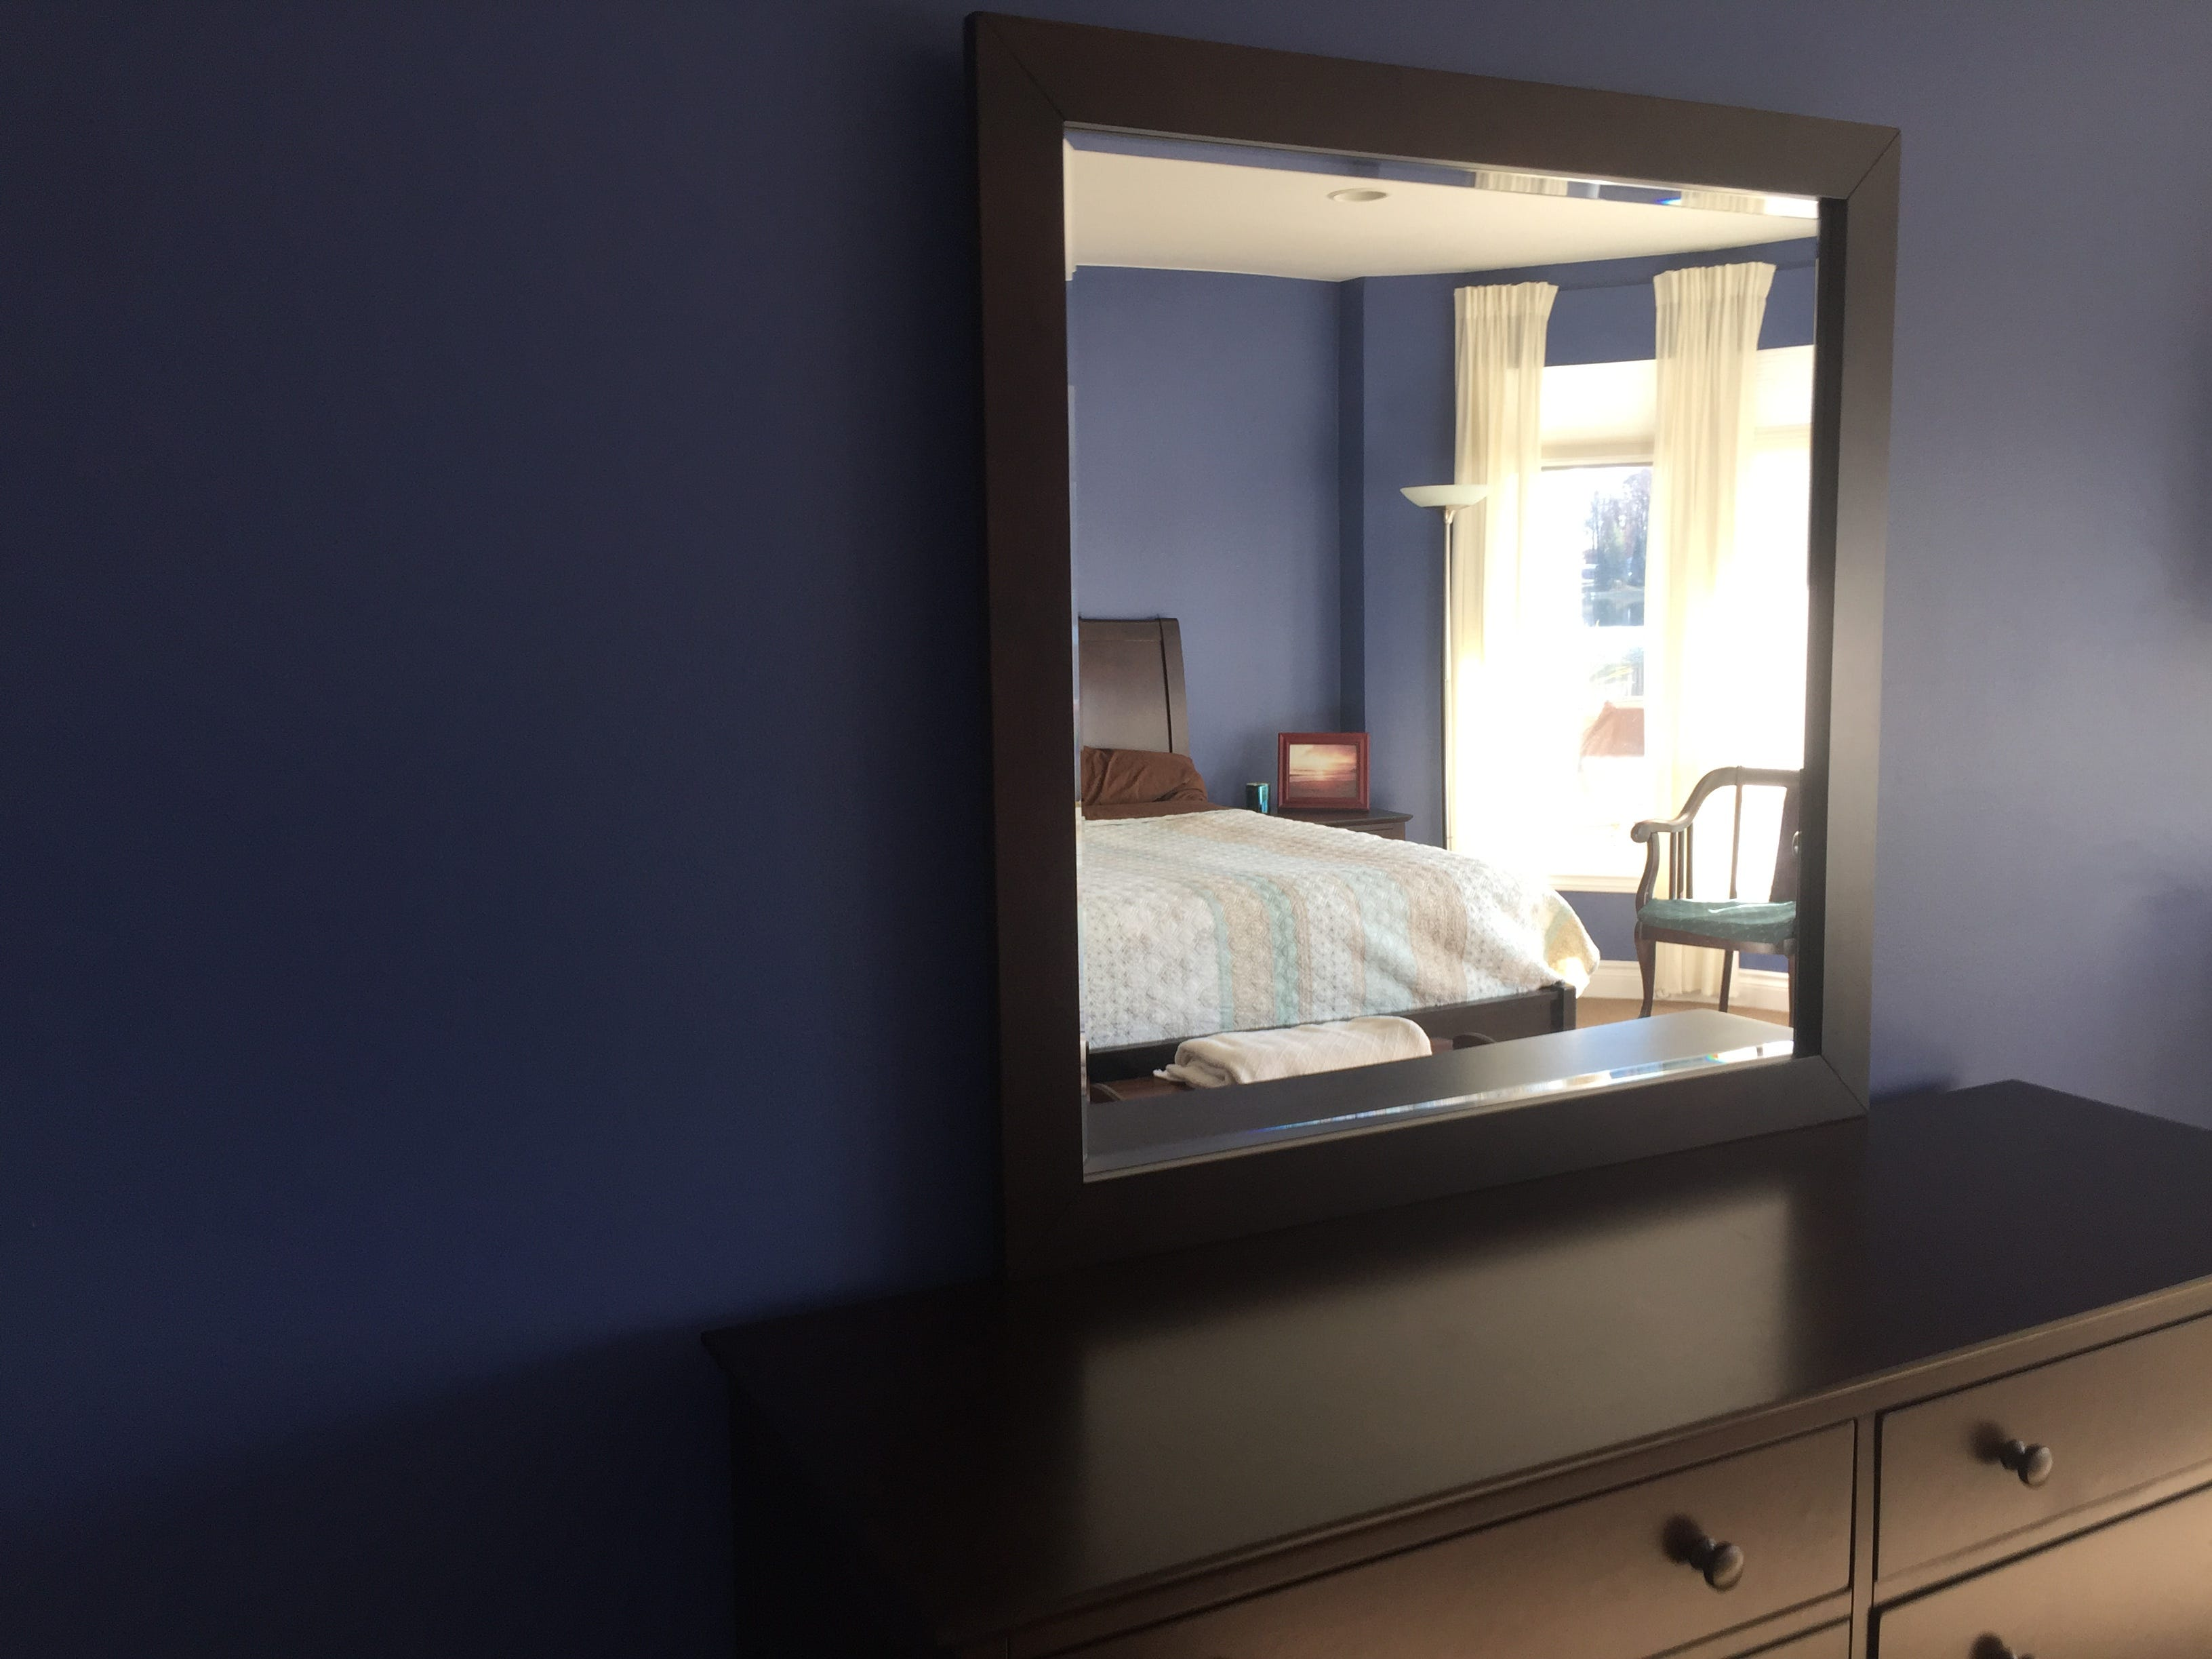 A glimpse of a guest room on the lower-level walk-out basement is seen in a mirror in a Clifford Road home in Genoa Township Tuesday, Dec. 4, 2018